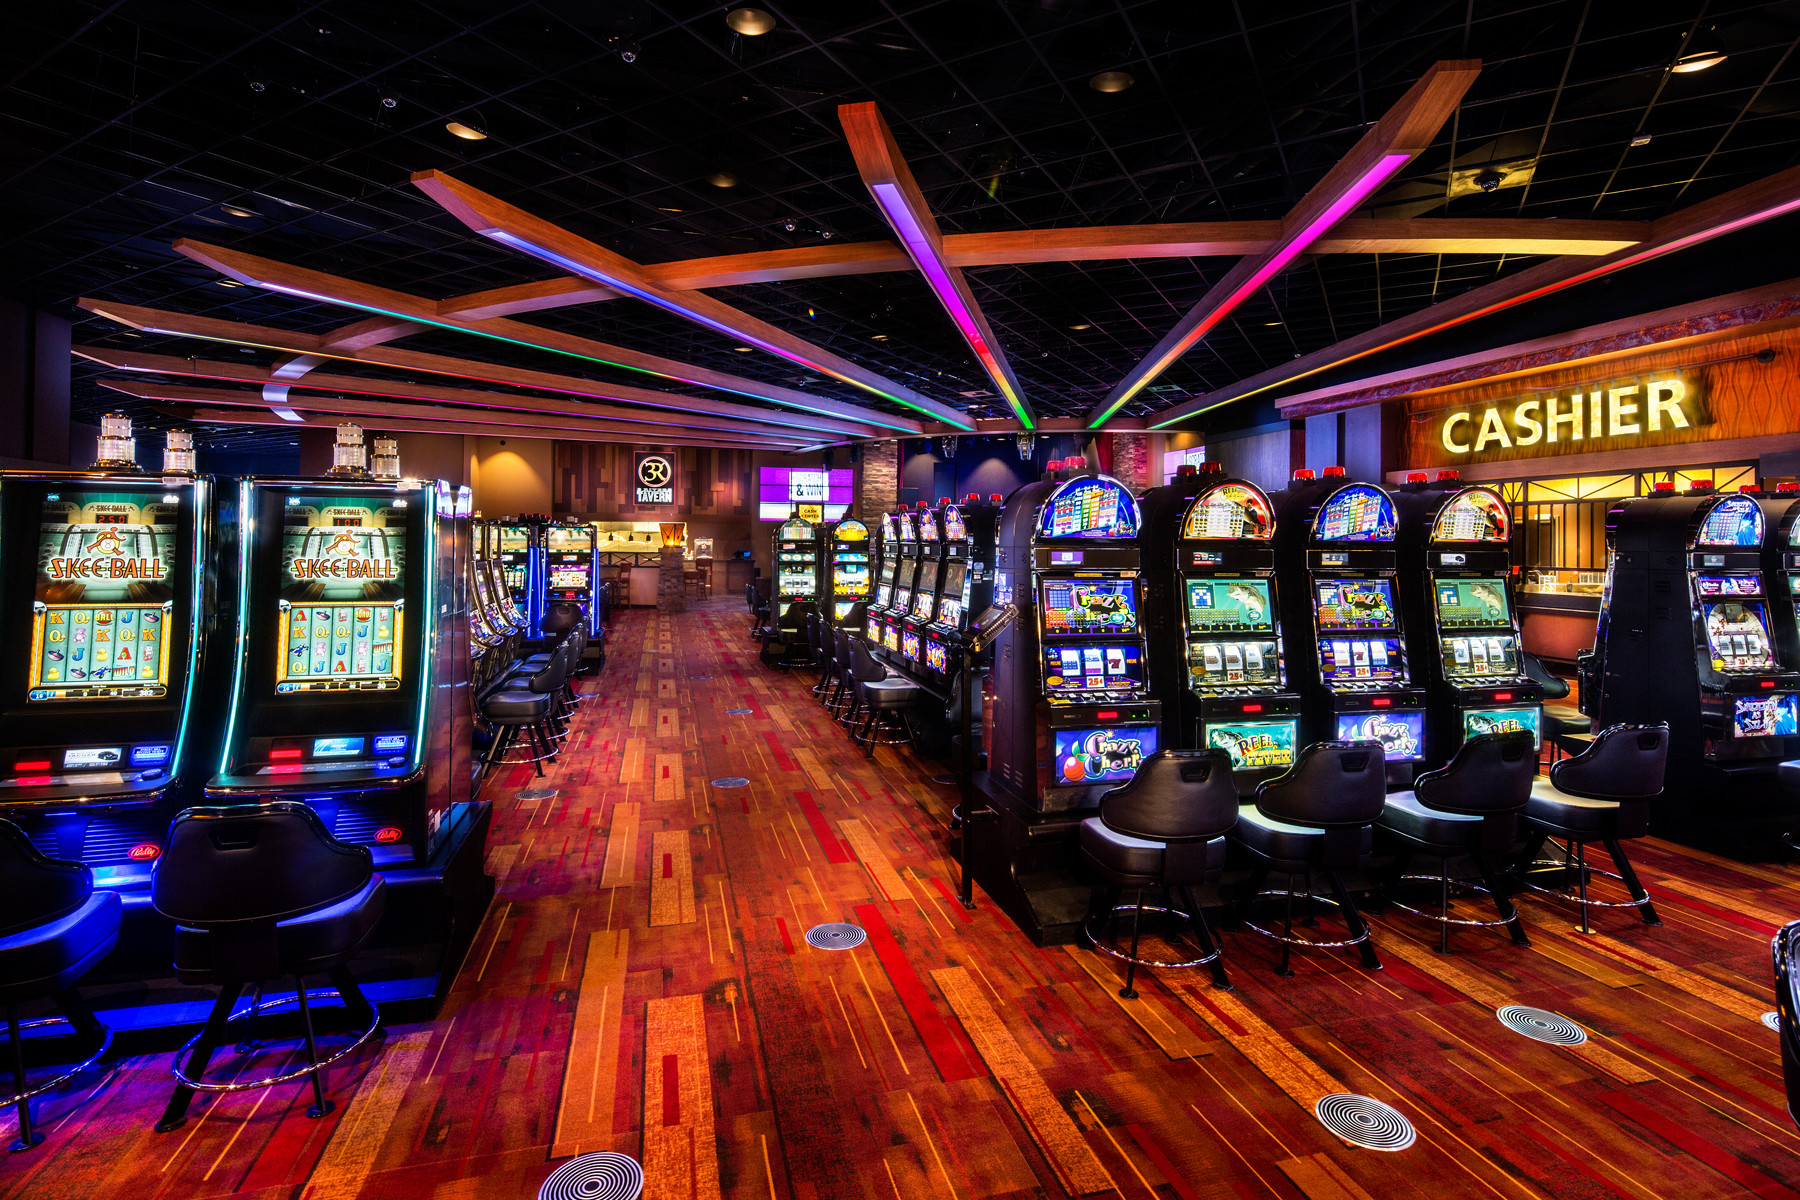 Gambling - An In-Depth Analysis on What Works and What Doesn't